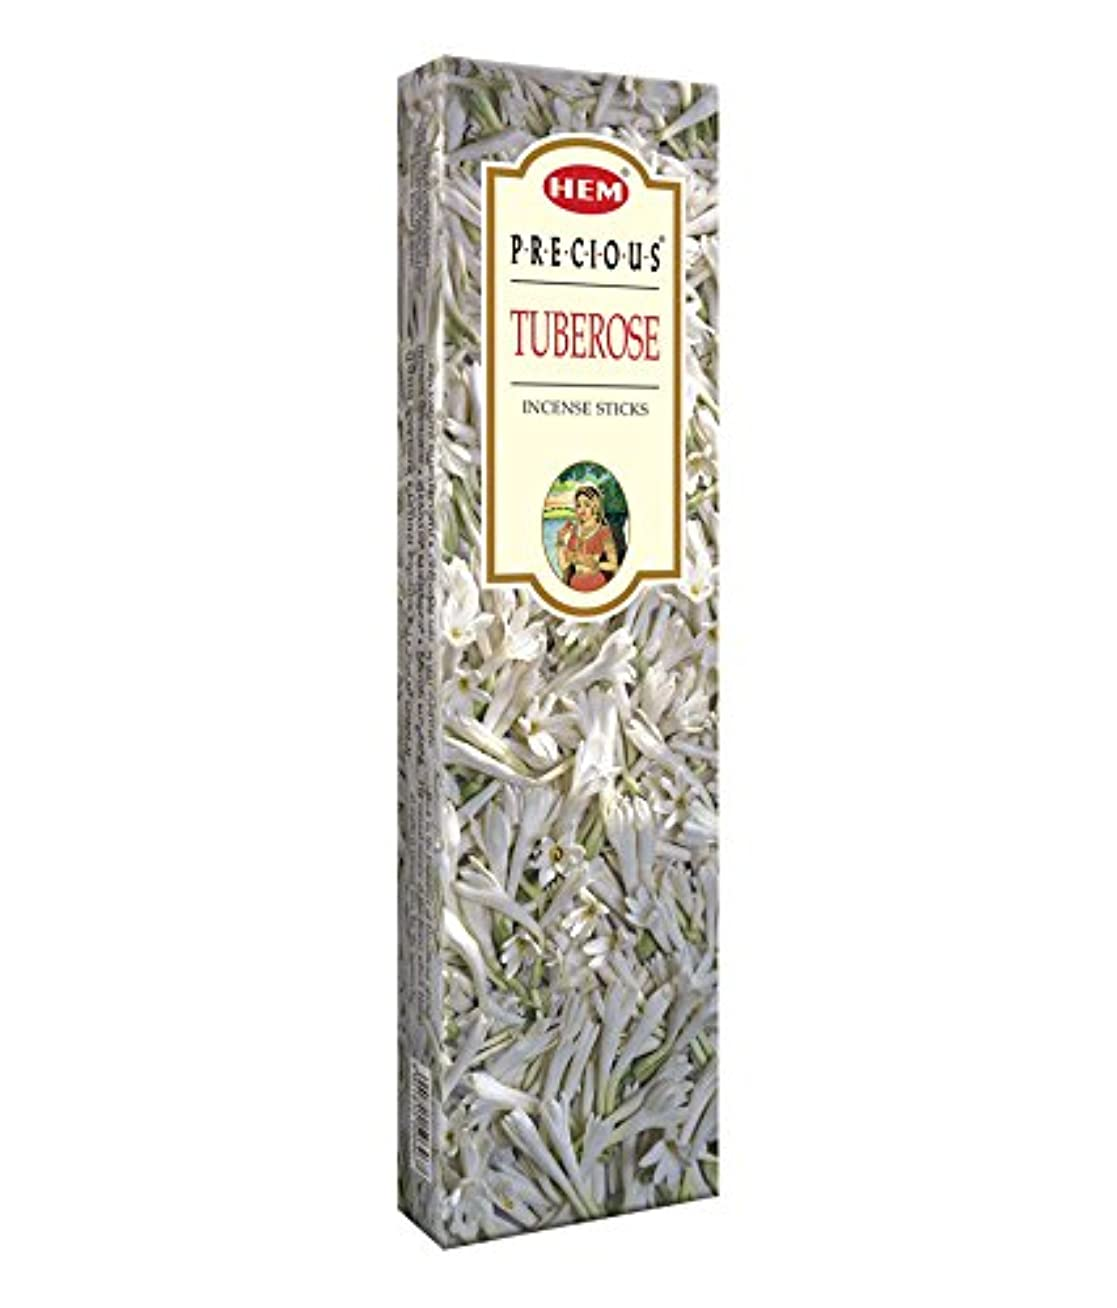 腐敗豆腐インカ帝国Agarbathi Fragrance Hem Precious Tuberose 100 g INCENSE STICKS